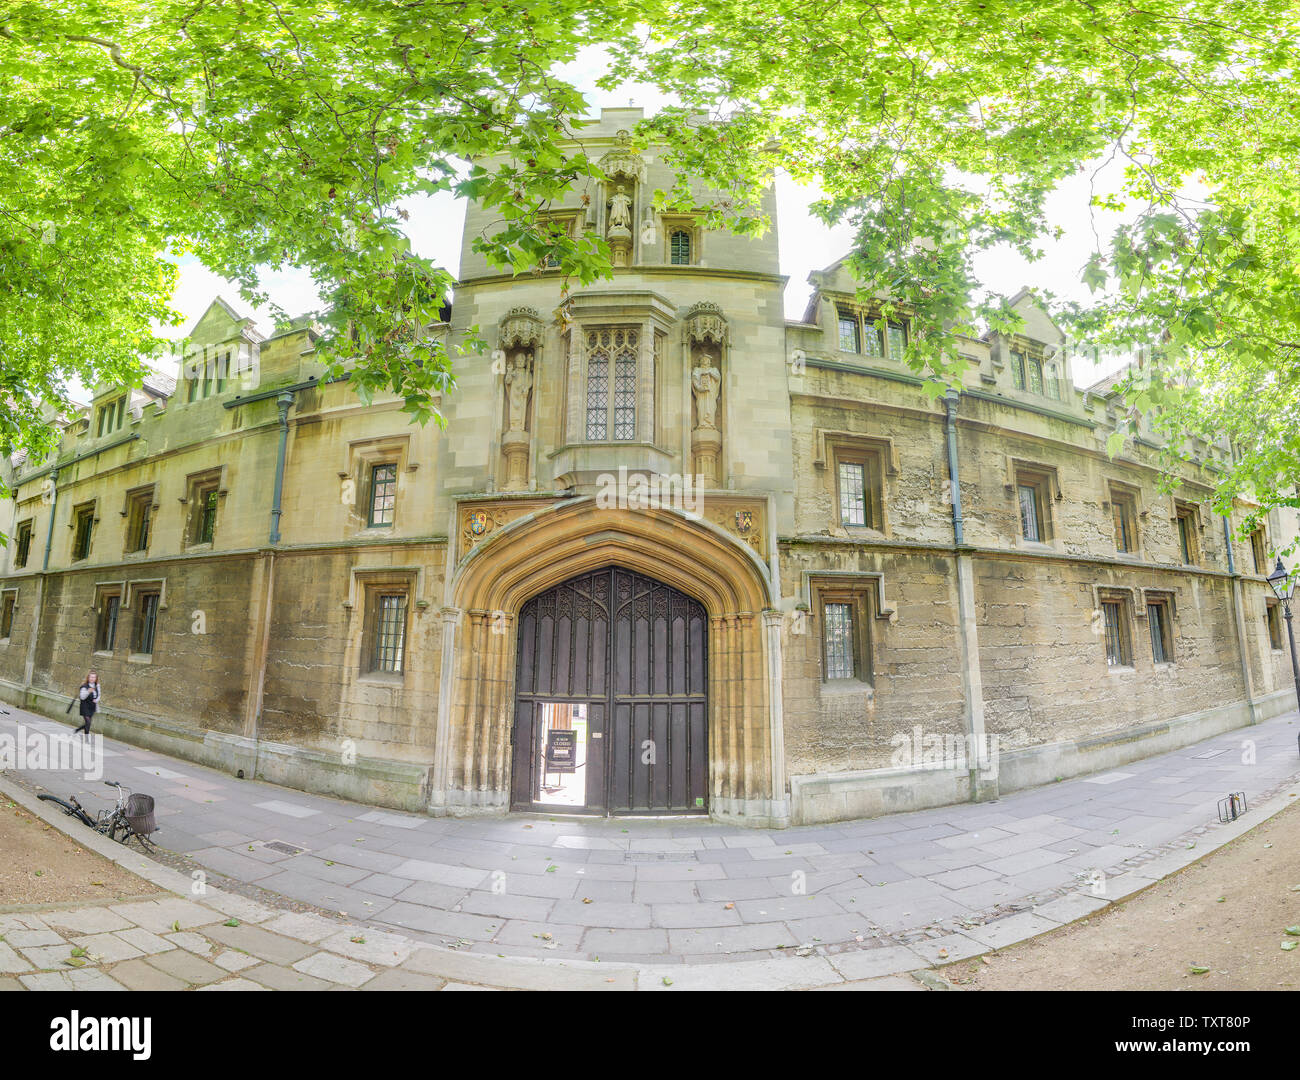 Entrance and exterior facade of St John's college, Oxford university, along St Giles street on a sunny summer morning. - Stock Image